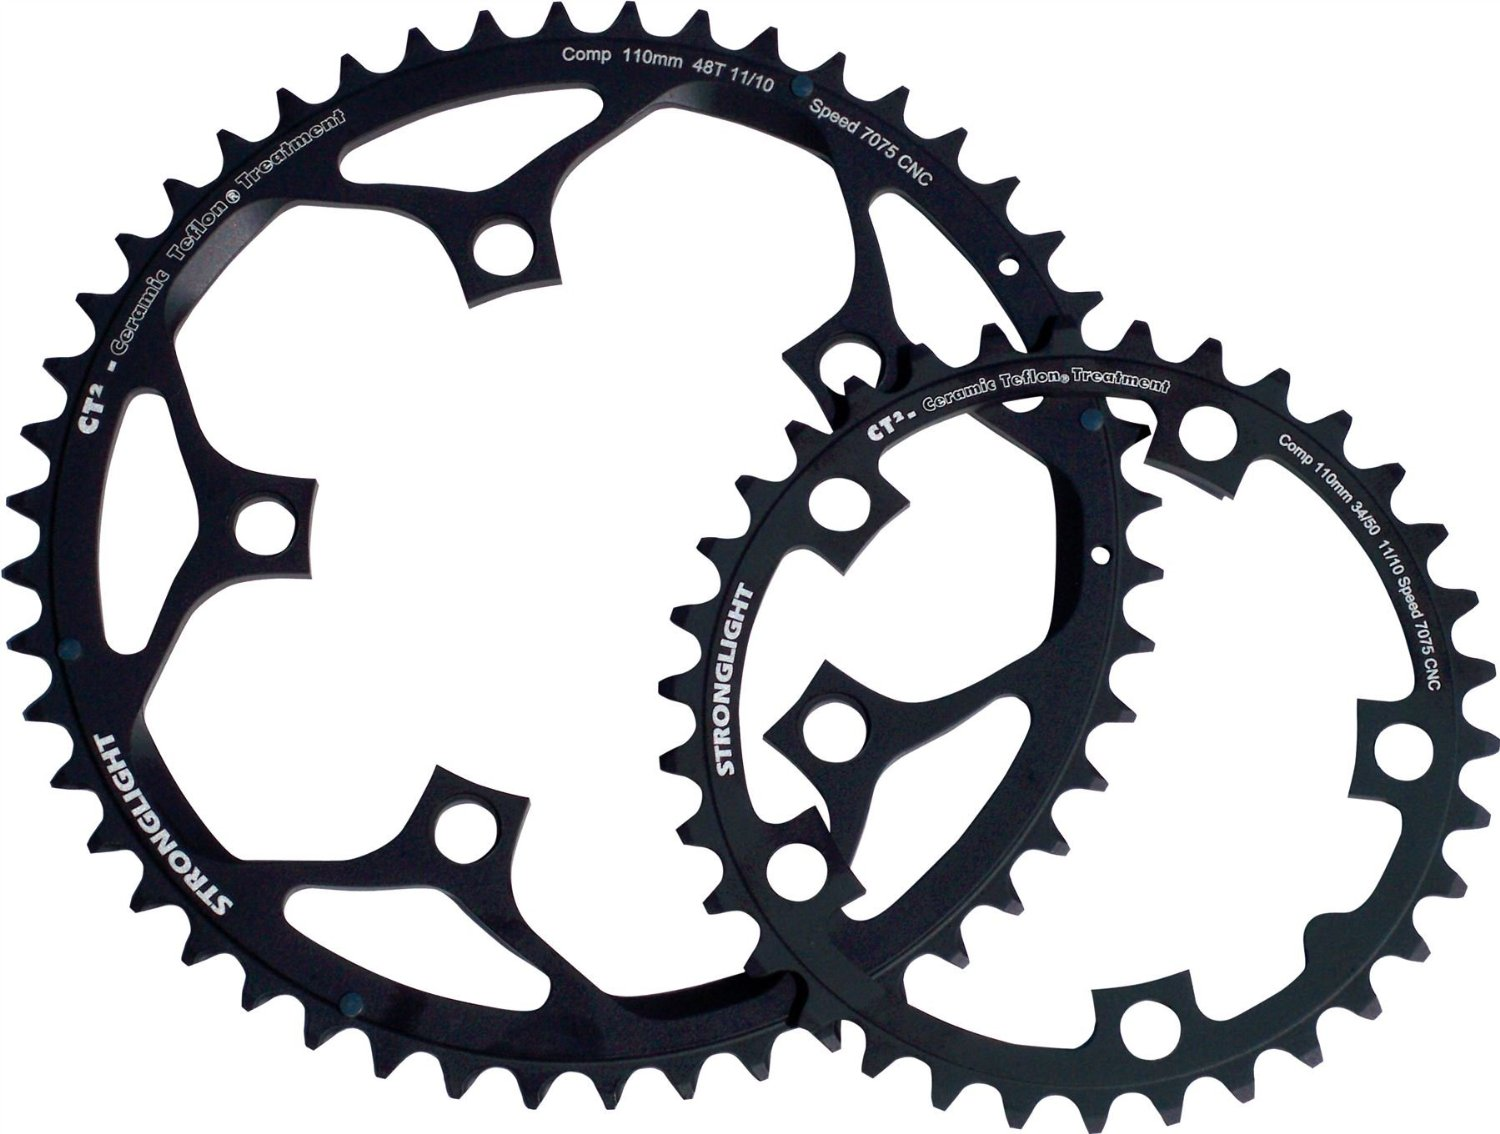 Stronglight CT2 Ceramic Teflon Black 110mm Shimano Compact Chainring - 49T (273573)